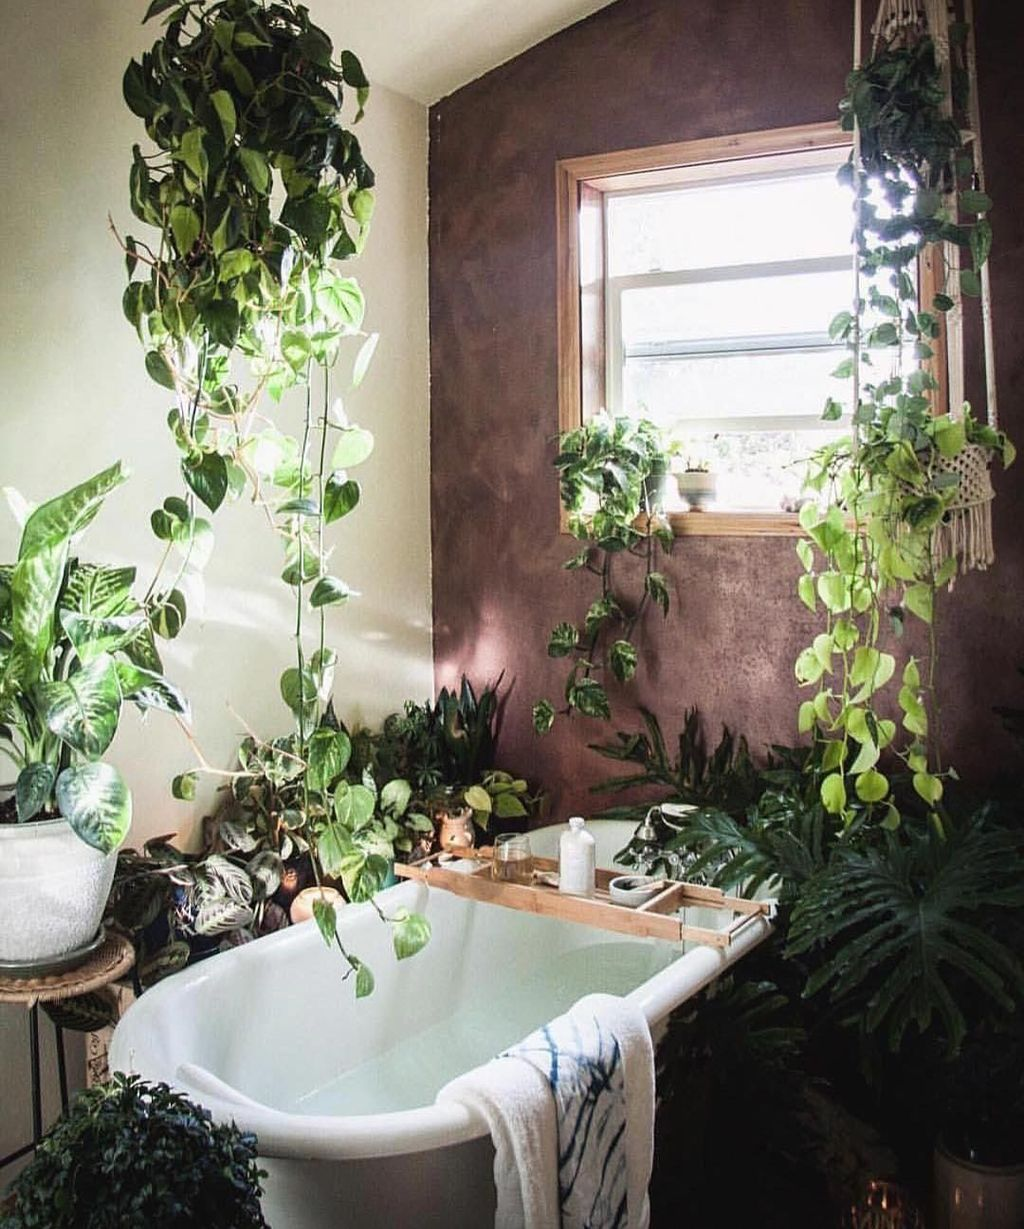 The Best Jungle Bathroom Decor Ideas To Get A Natural Impression 26